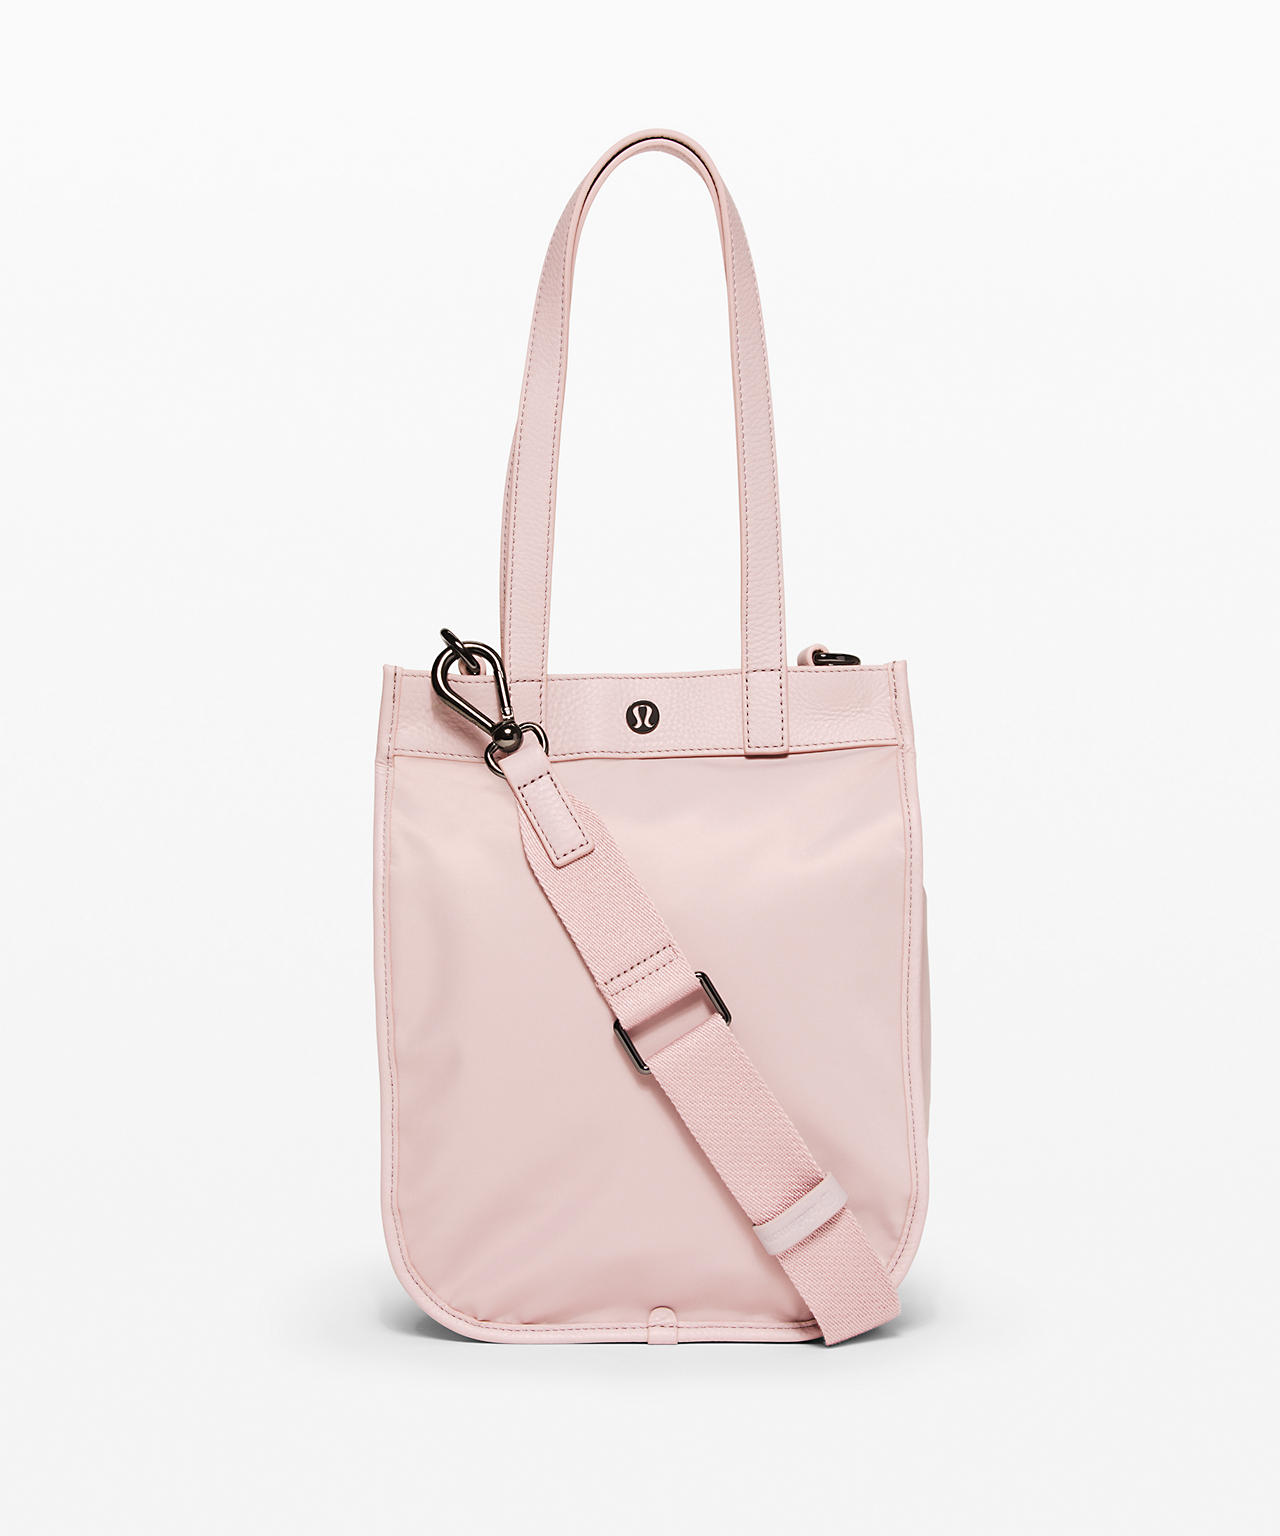 Now and always tote mini, lululemon uplloa